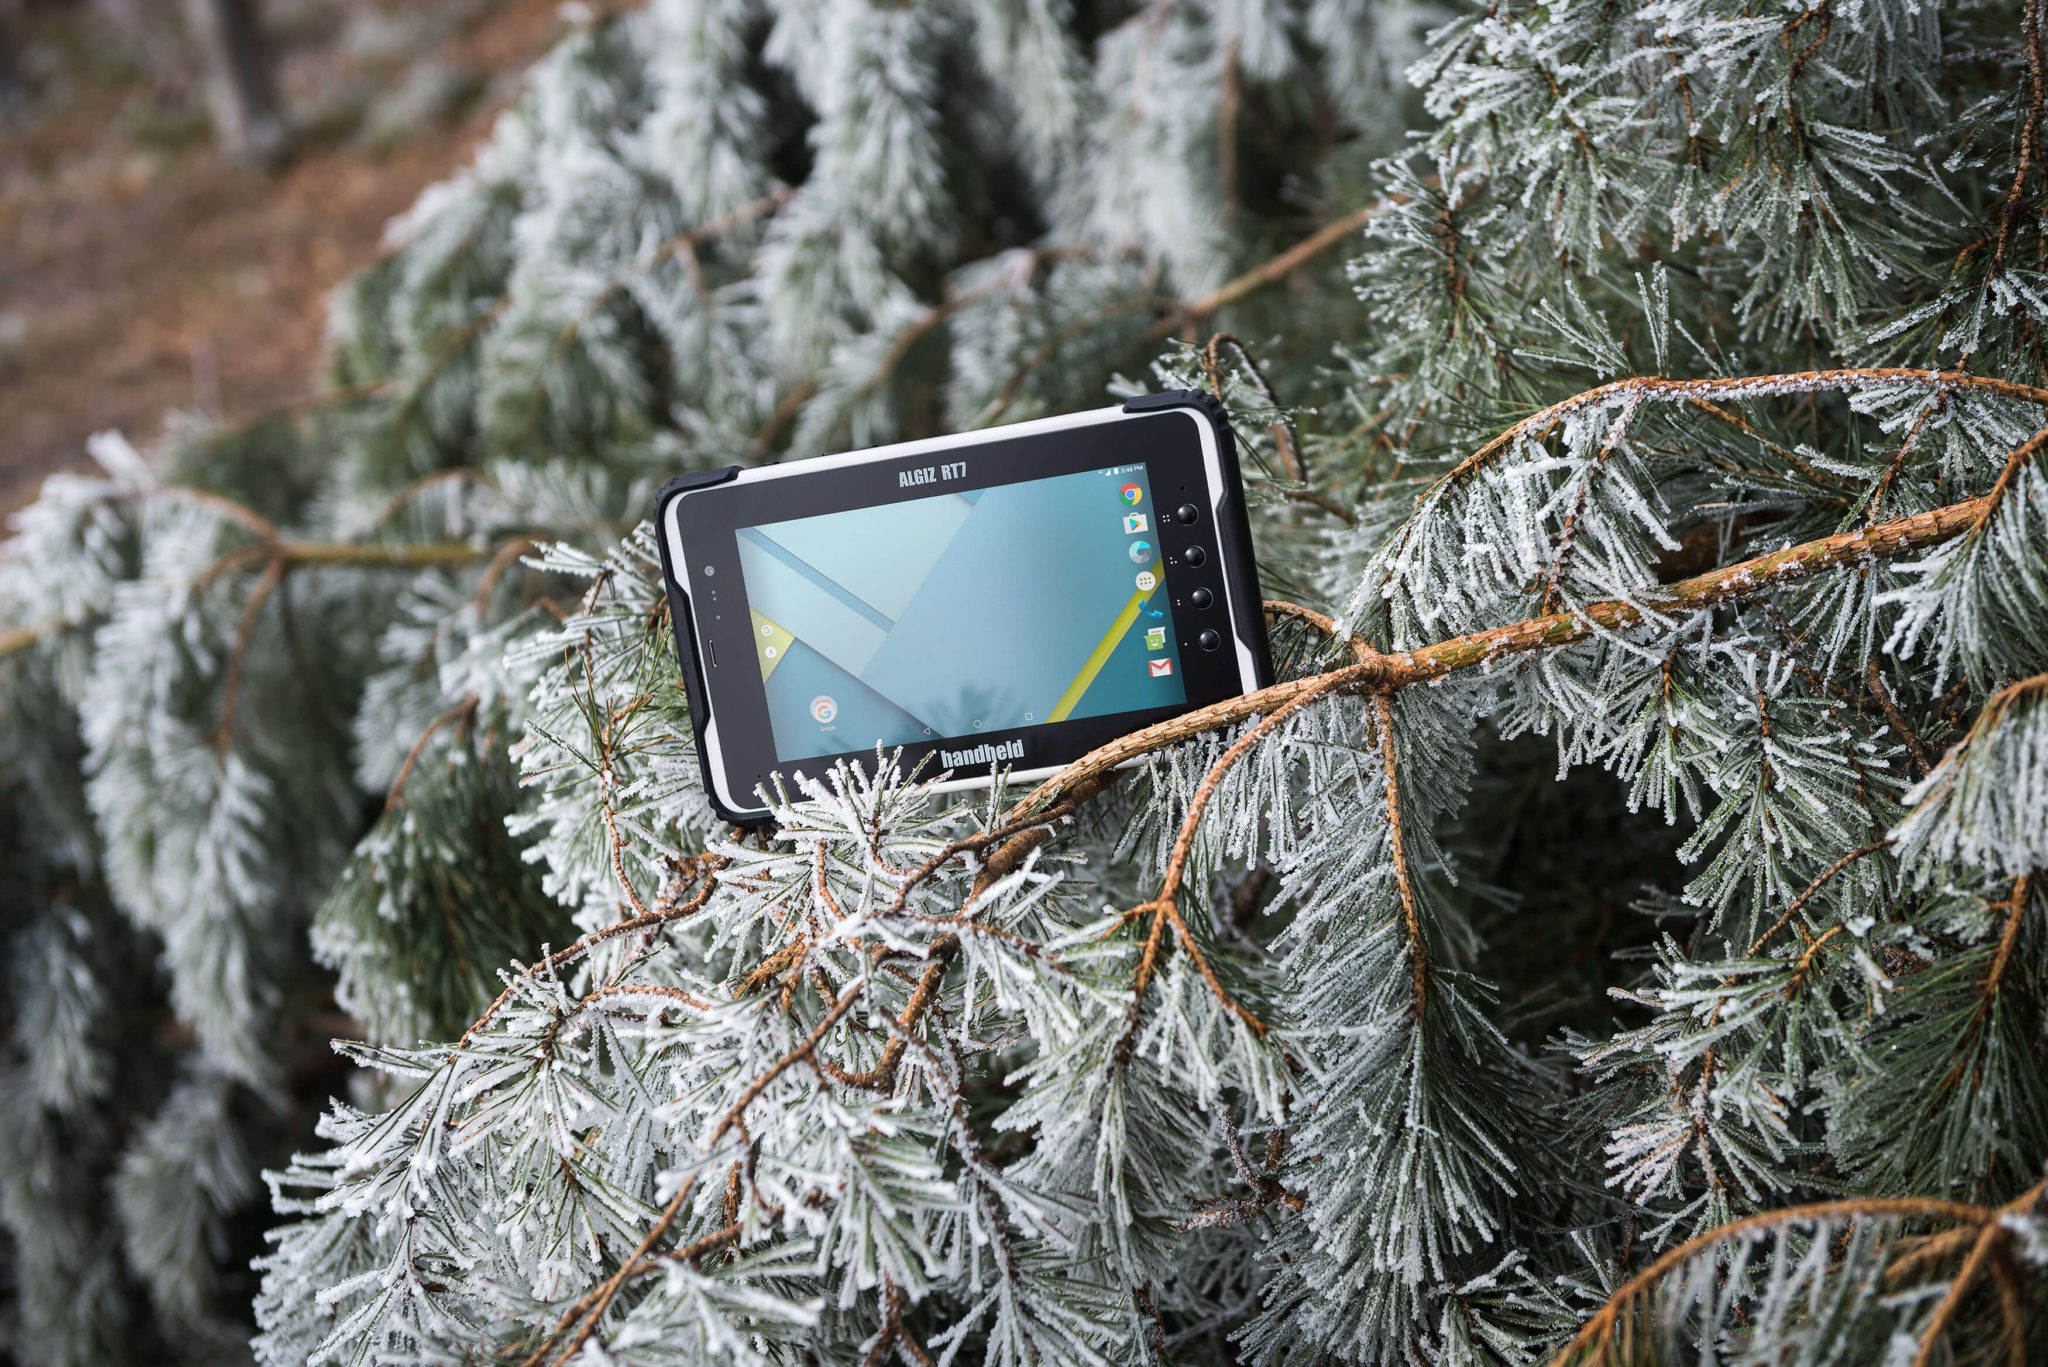 Handheld-ALGIZ-RT7-rugged-tablet-forestry-Android-6